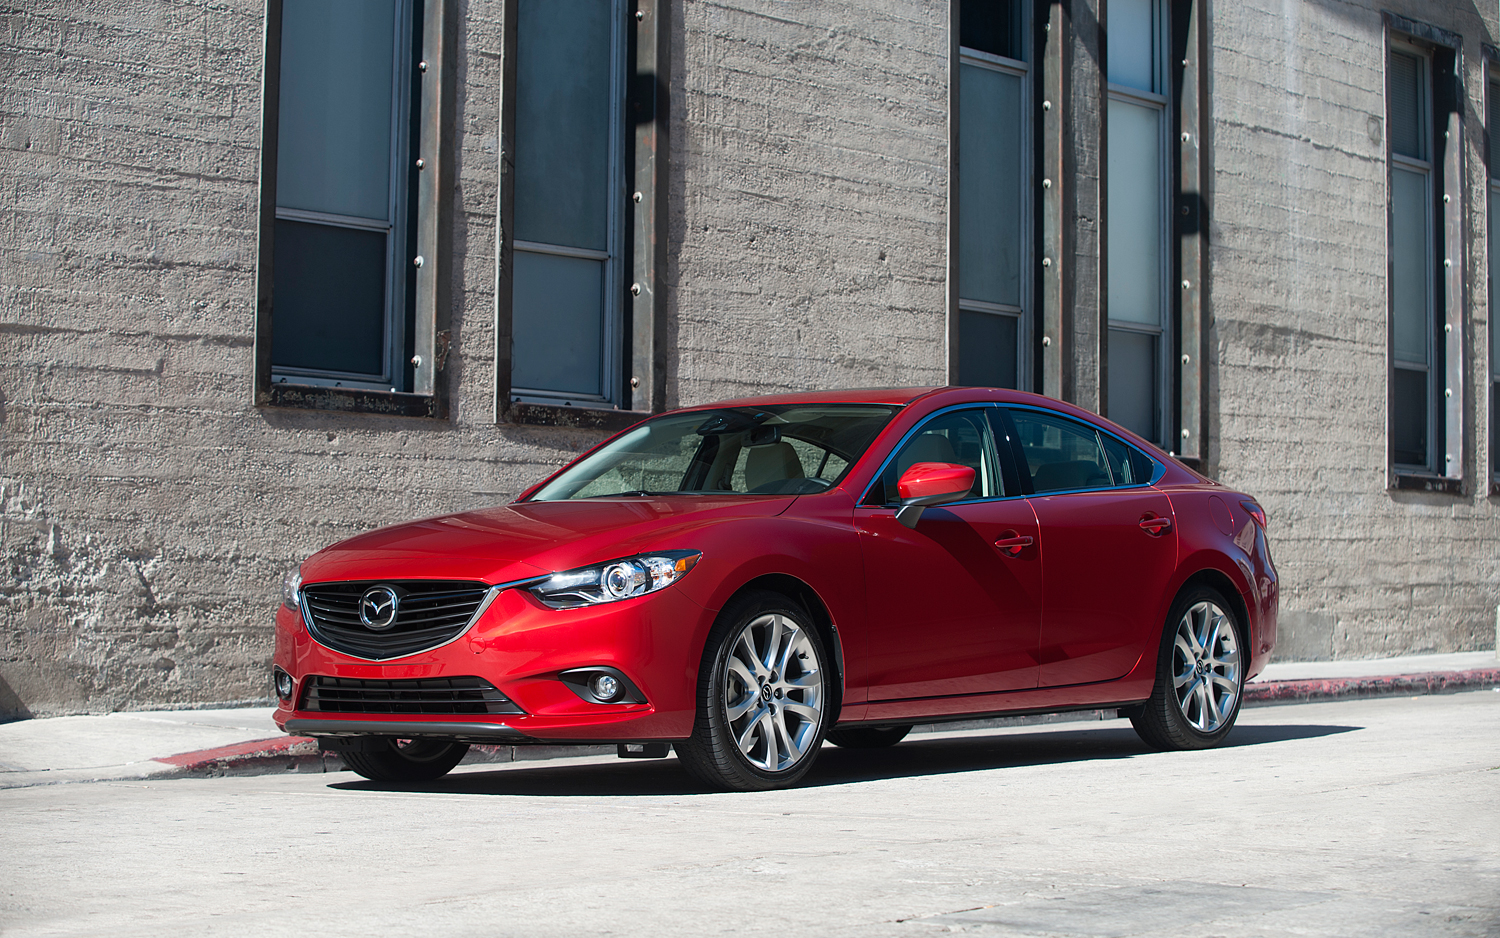 2014 Mazda6 EPA Rated 26/38 MPG With Automatic, 25/37 MPG With Manual